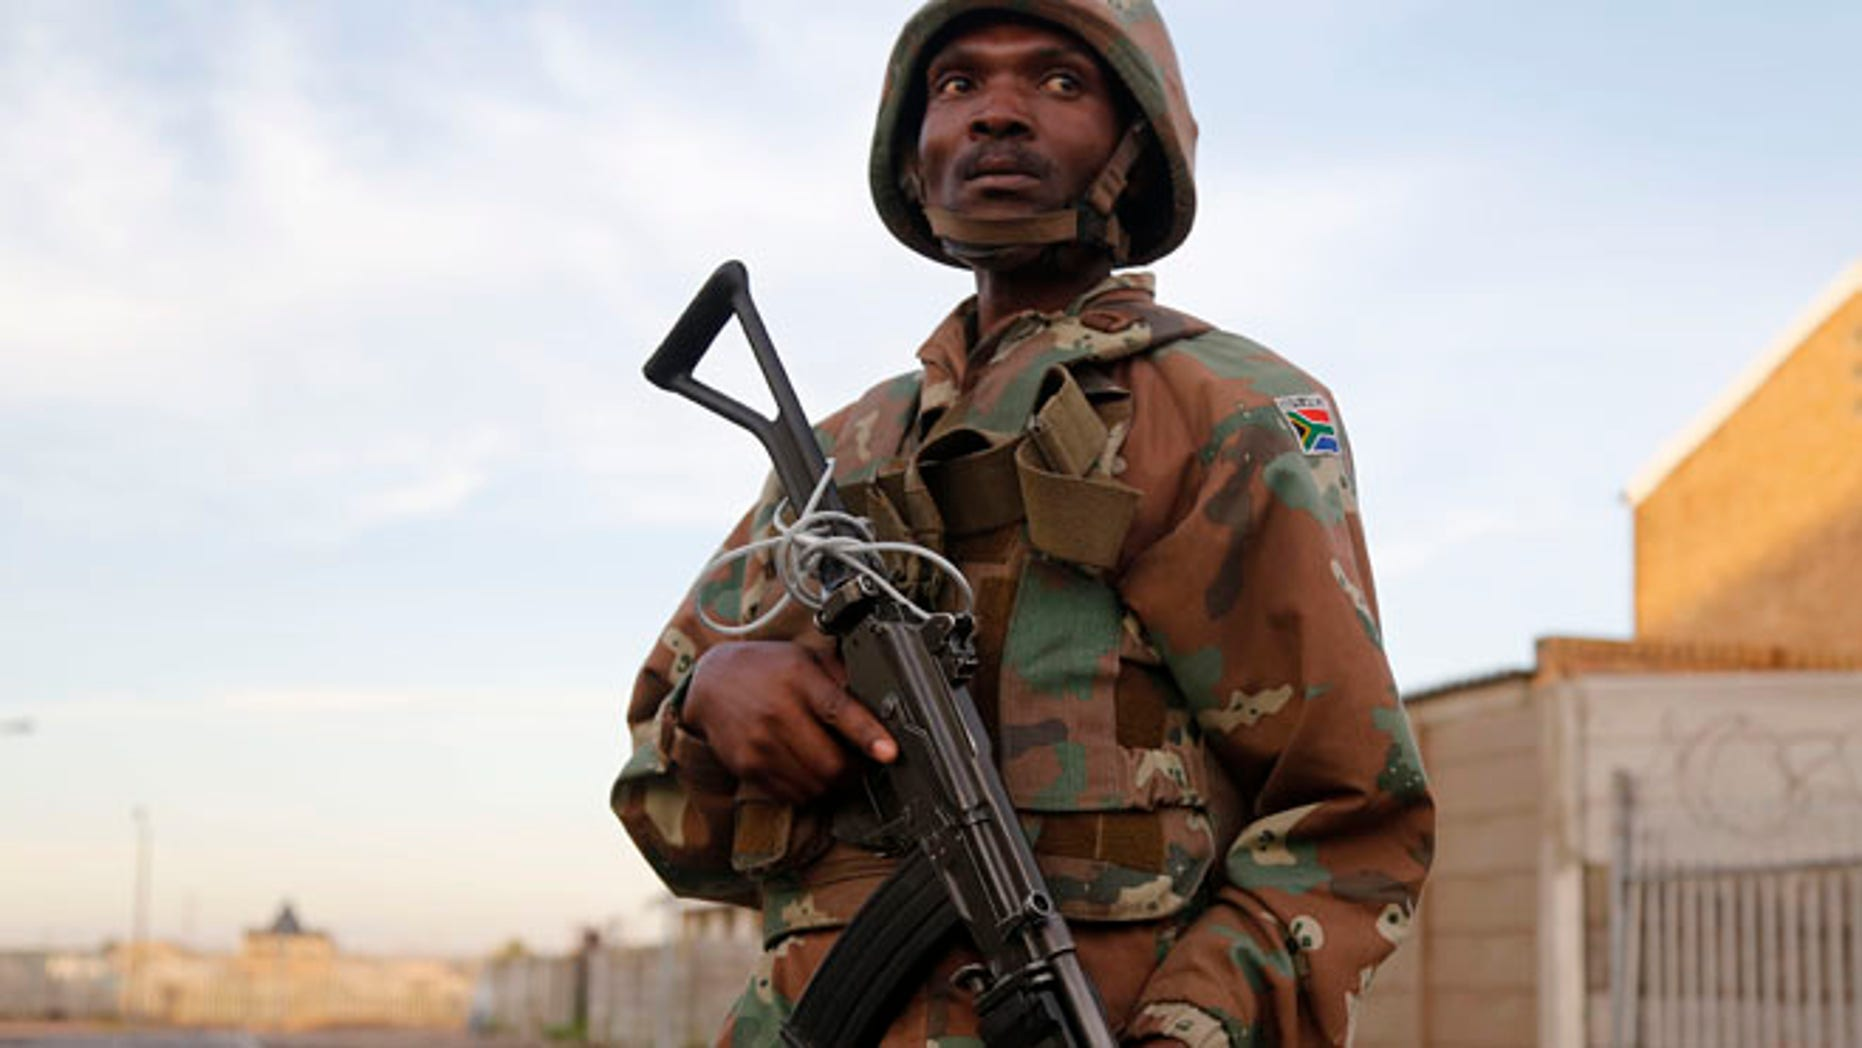 May 21, 2015: A South African soldier provide security for policemen as they look for drugs  in Manenberg, South Africa. (AP)